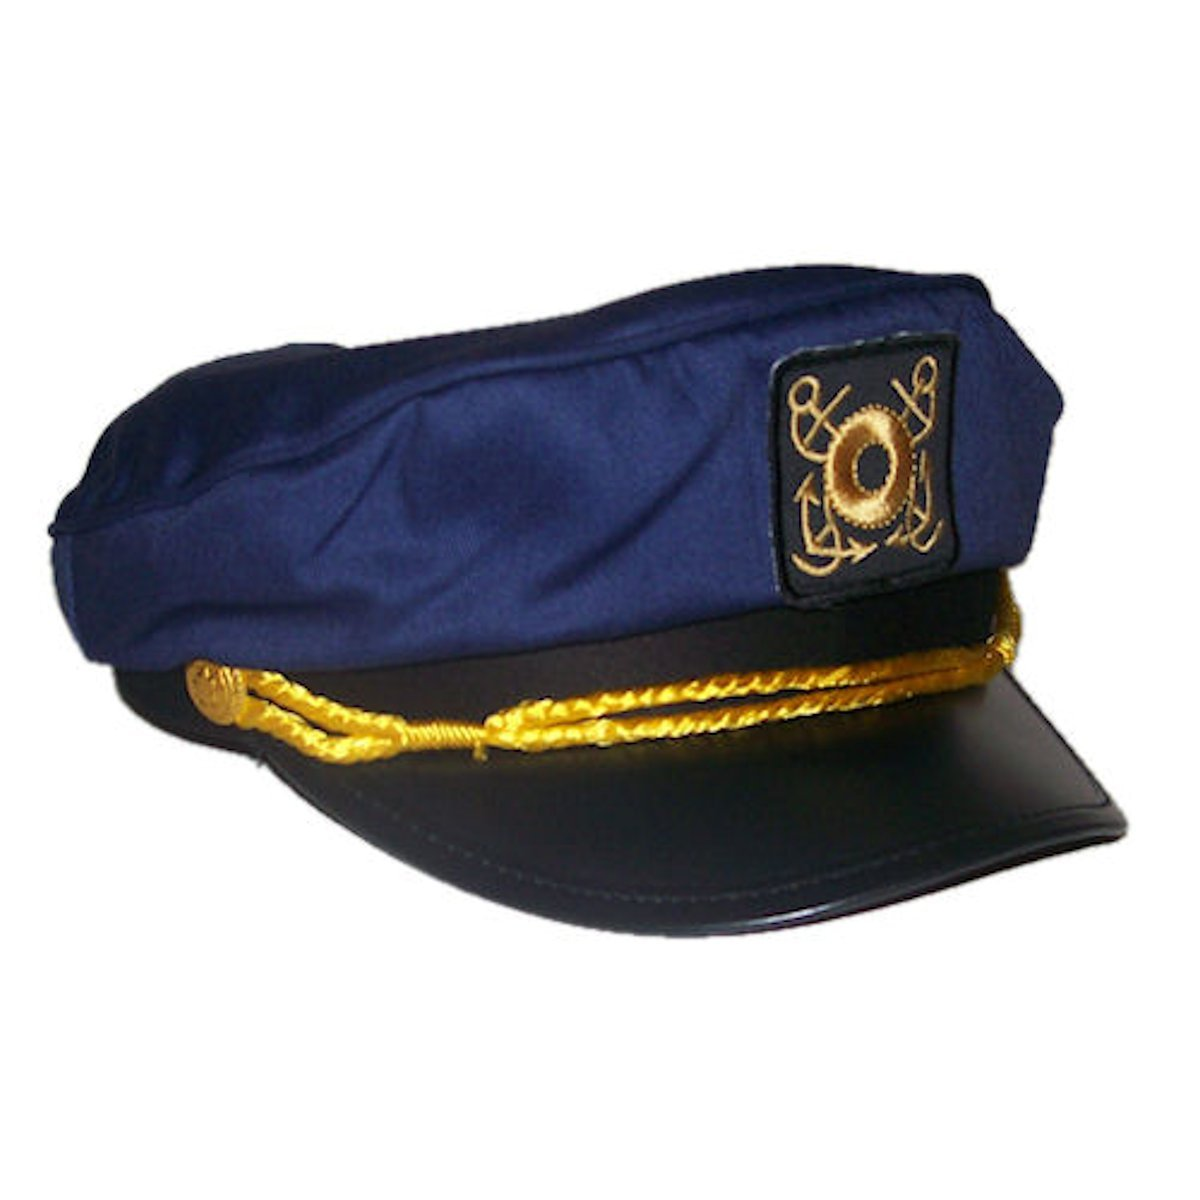 RTD Trading Adult Deluxe Yacht Captain Sailor Hat Adjustable (Navy Blue)